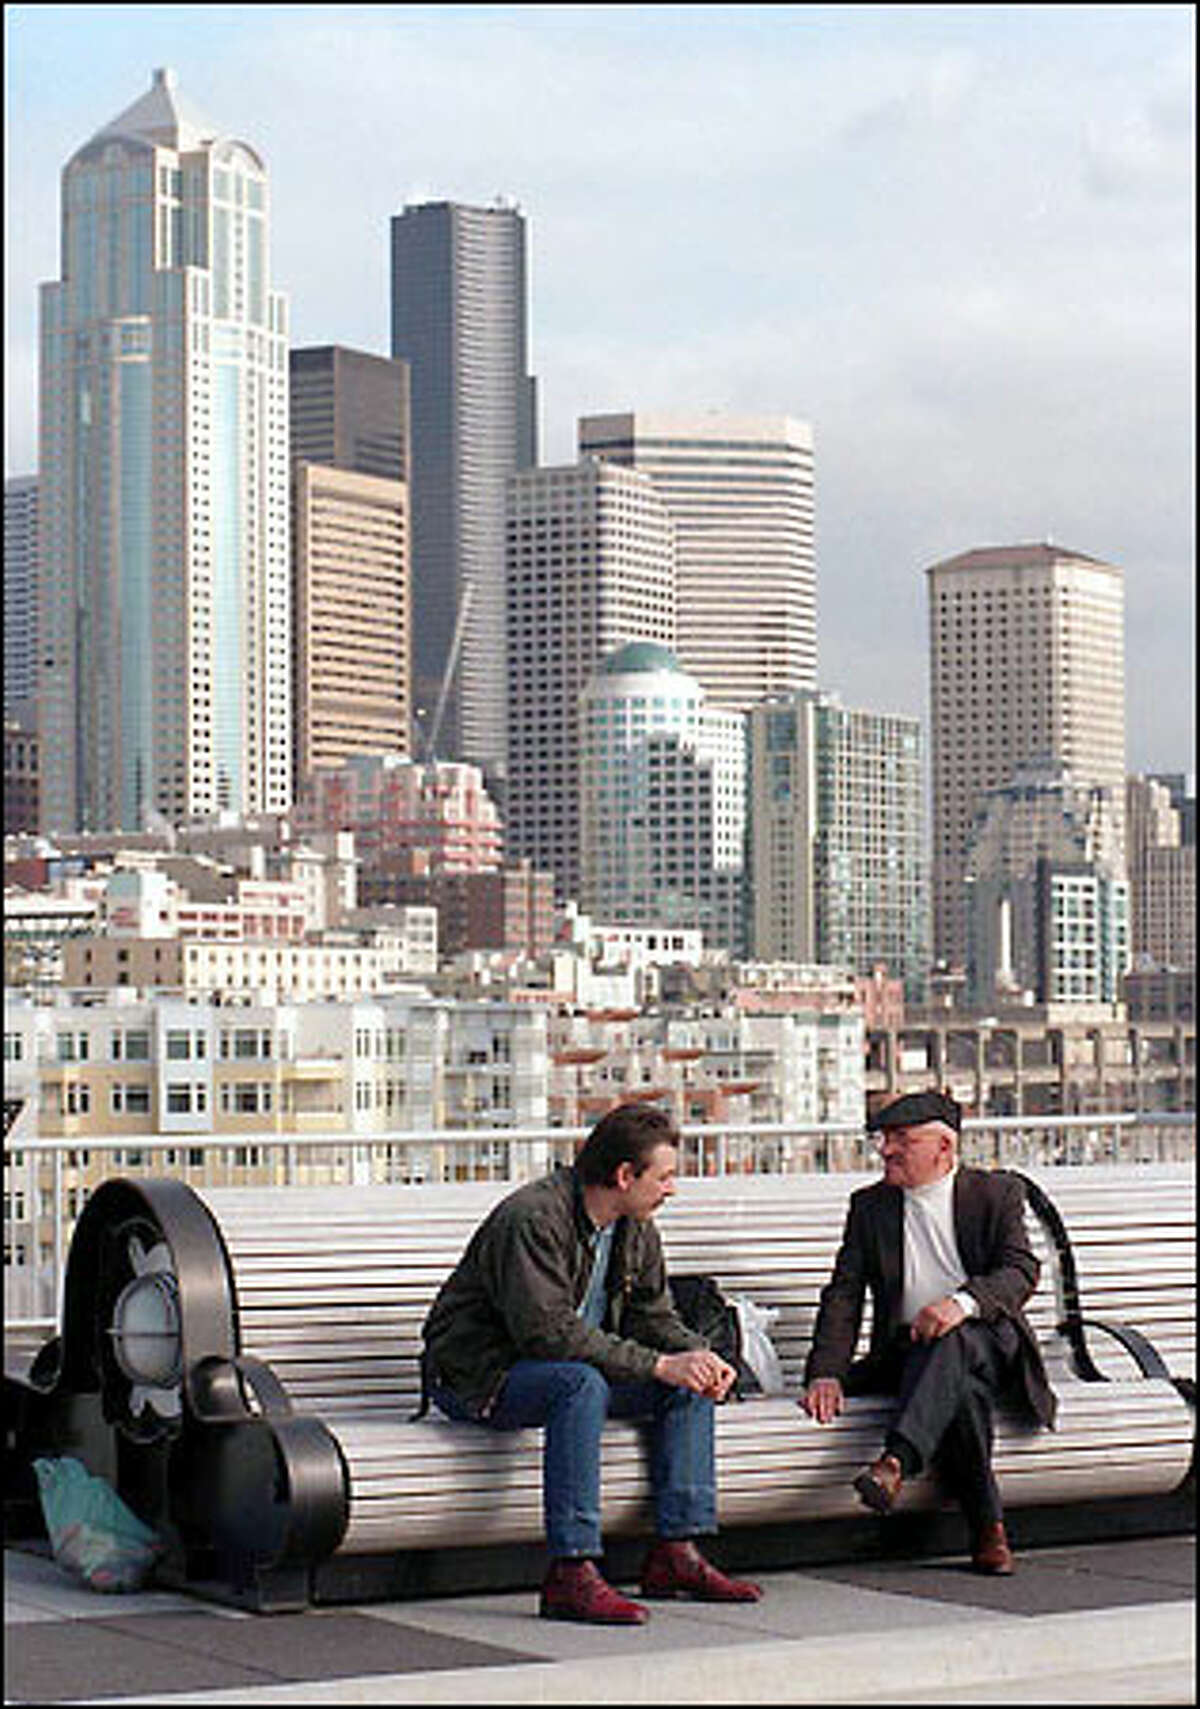 1.Bell Street Pier Rooftop Deck: Capture the dramatic view of downtown's skyline from the waterfront's historic Pier 66, also know as the Bell Street Pier. Pier 66 became the city's first pier when it opened in 1914 at the foot of Blanchard and Bell streets.